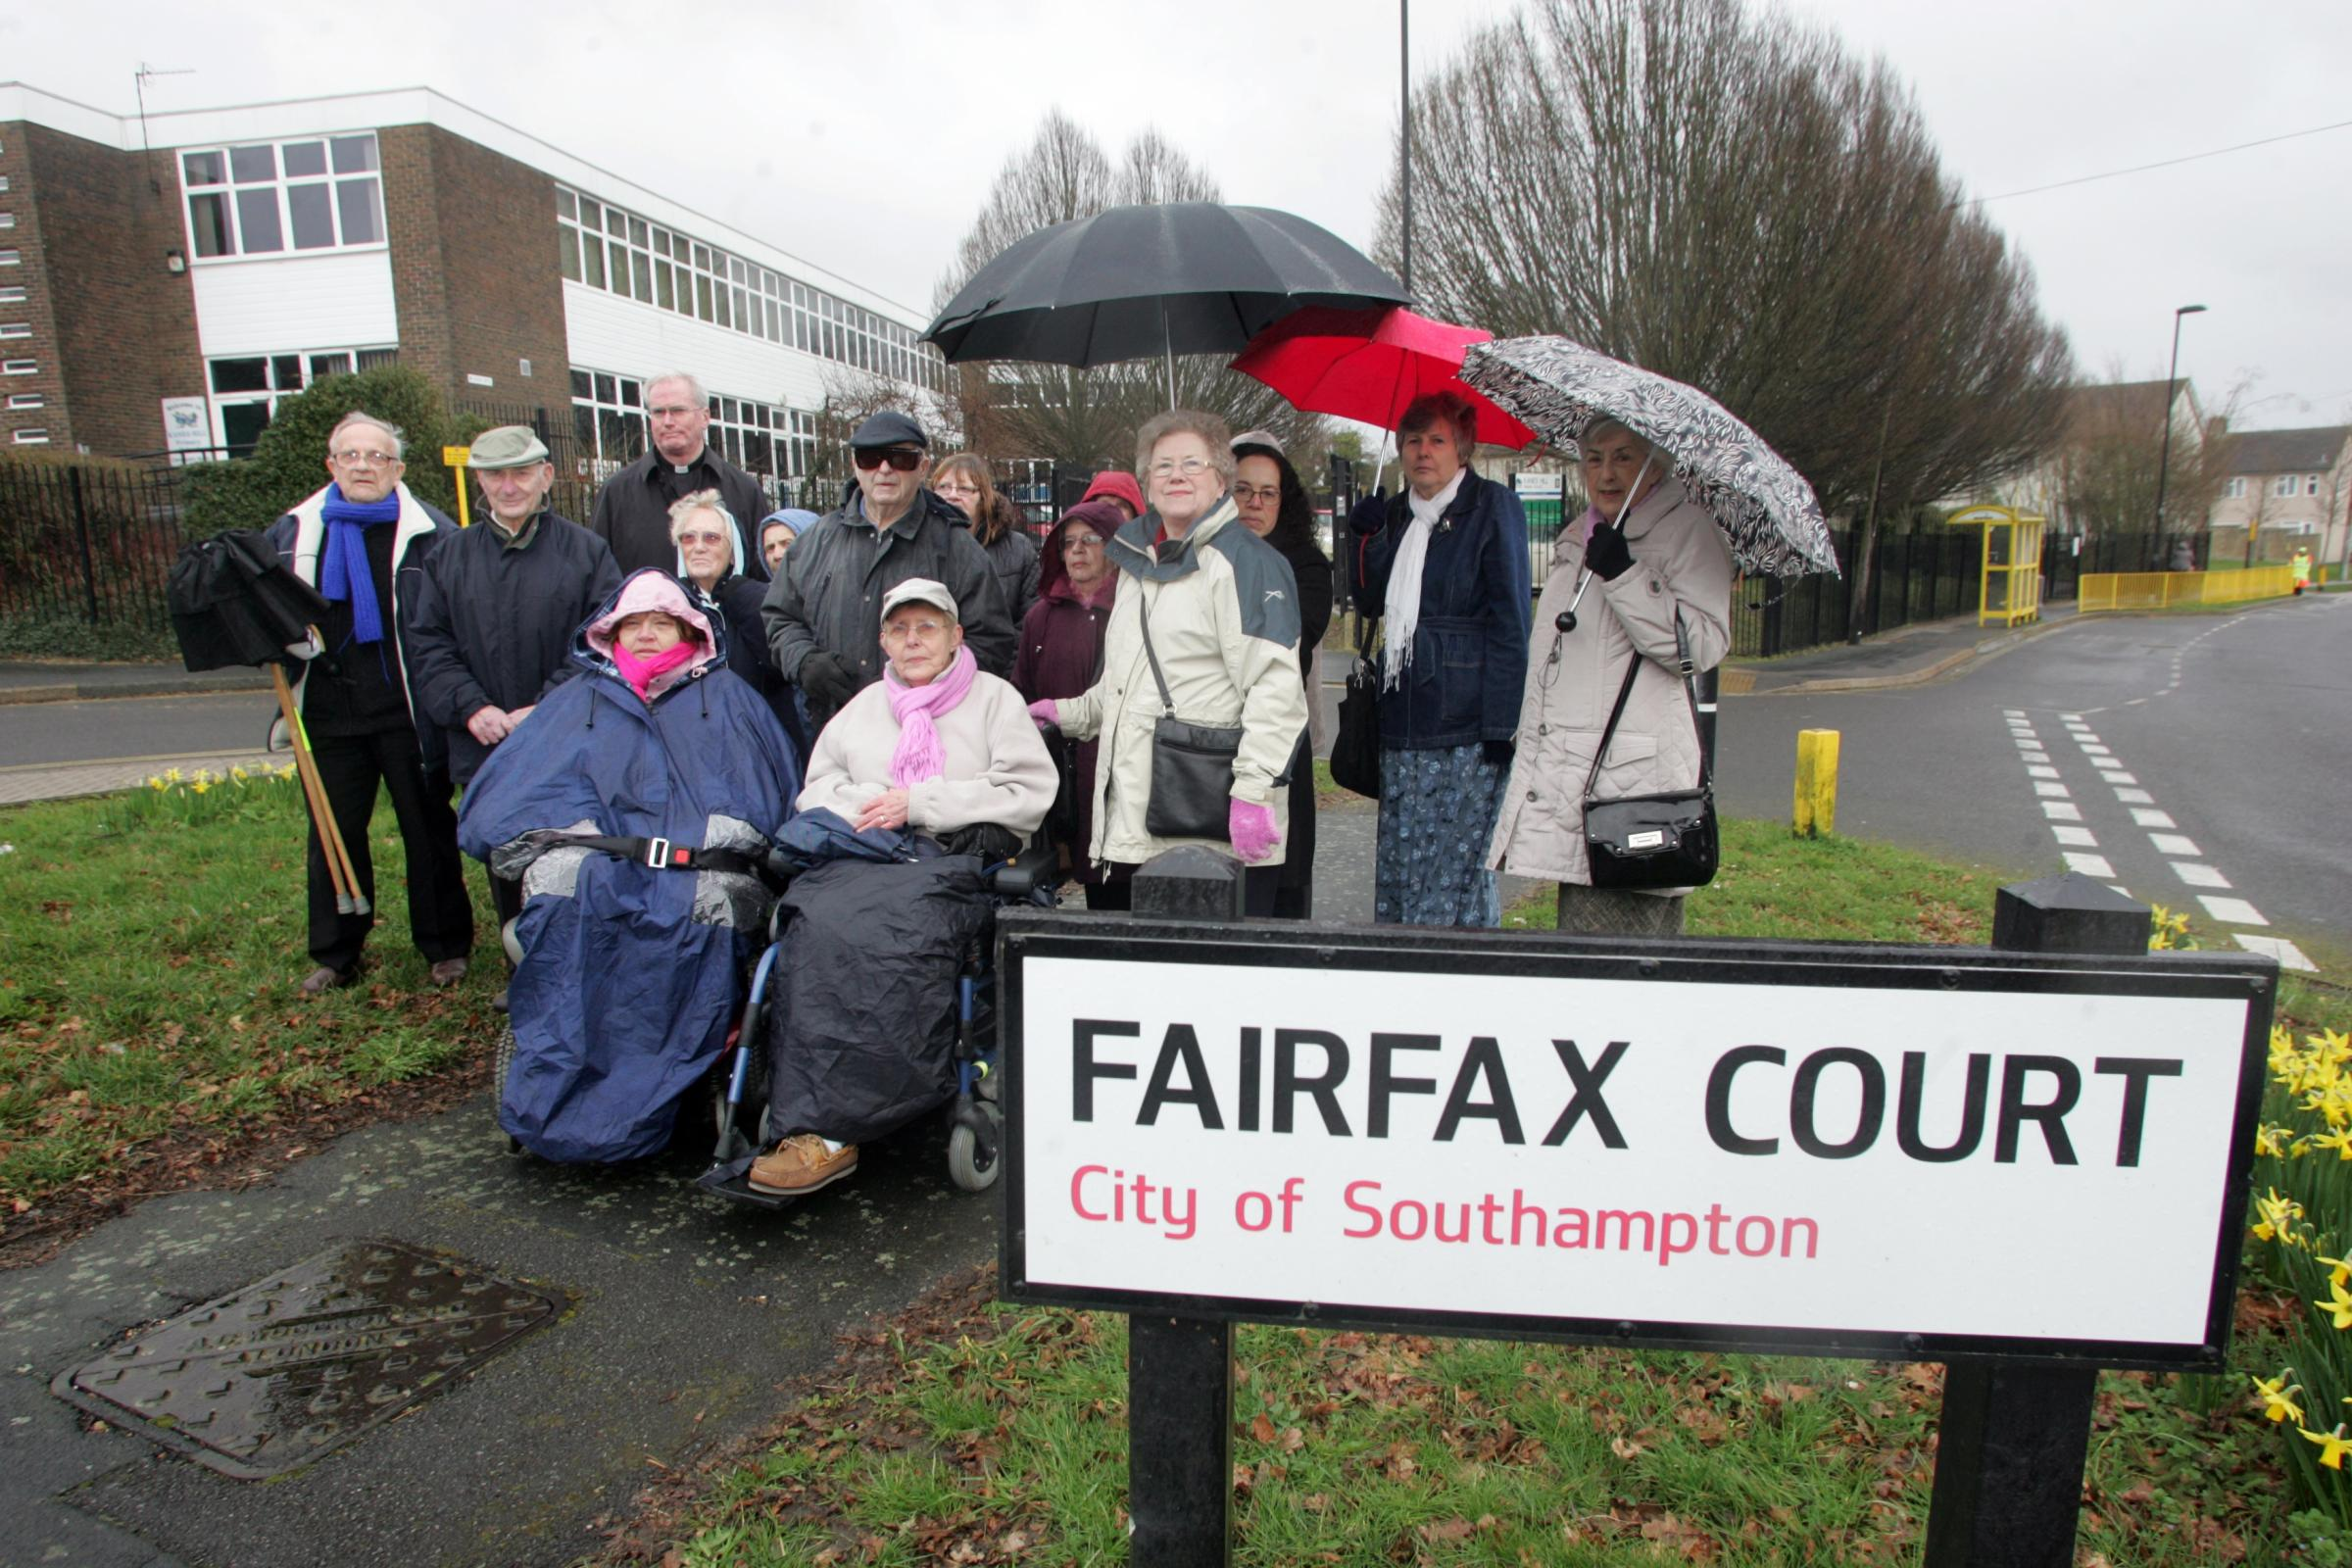 Residents of Fairfax Court, Thornhill